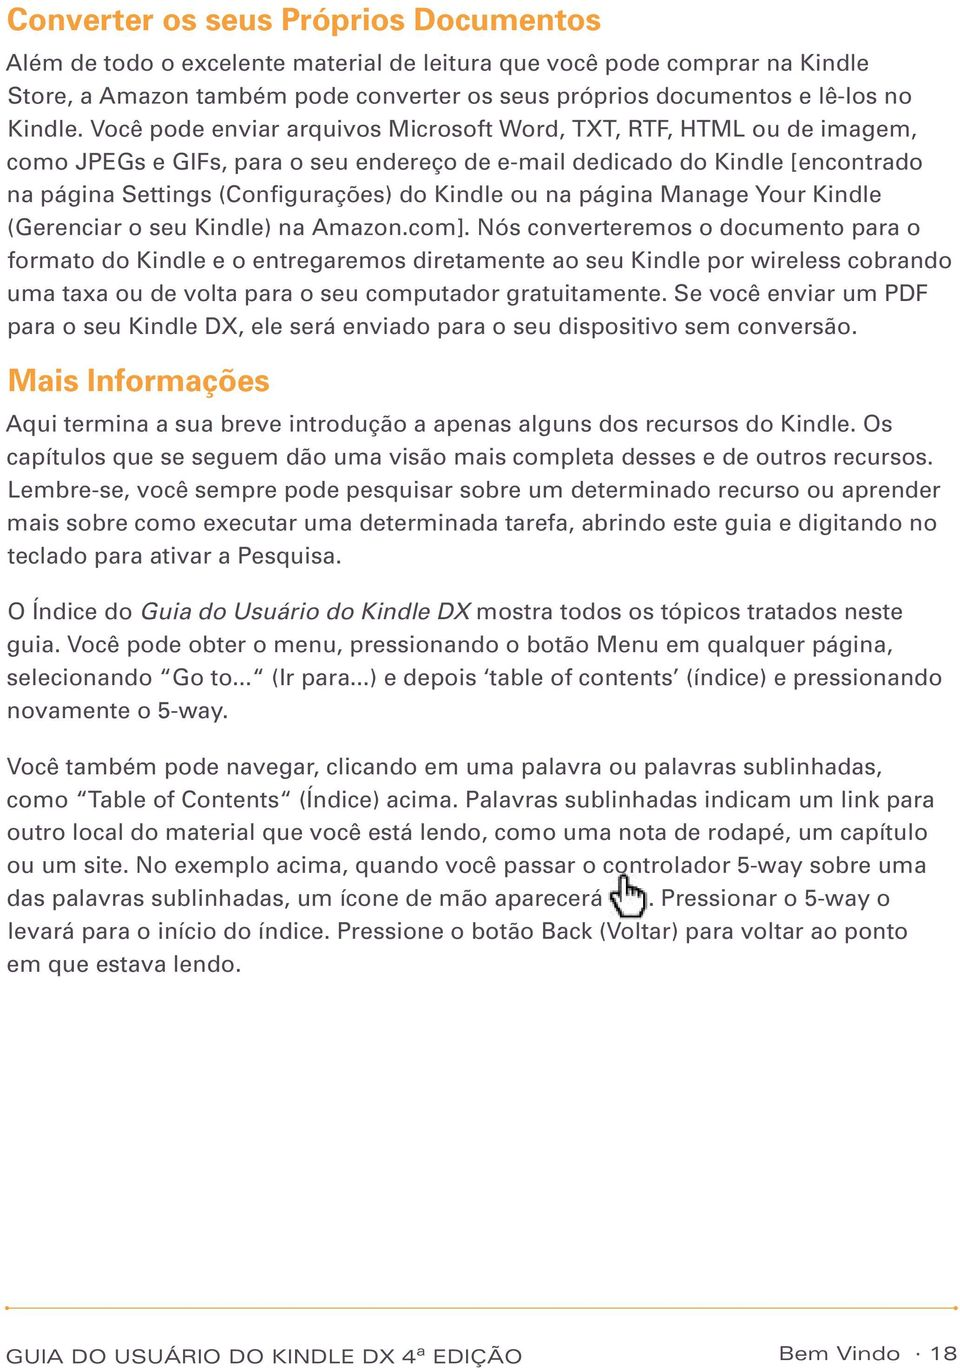 na página Manage Your Kindle (Gerenciar o seu Kindle) na Amazon.com].